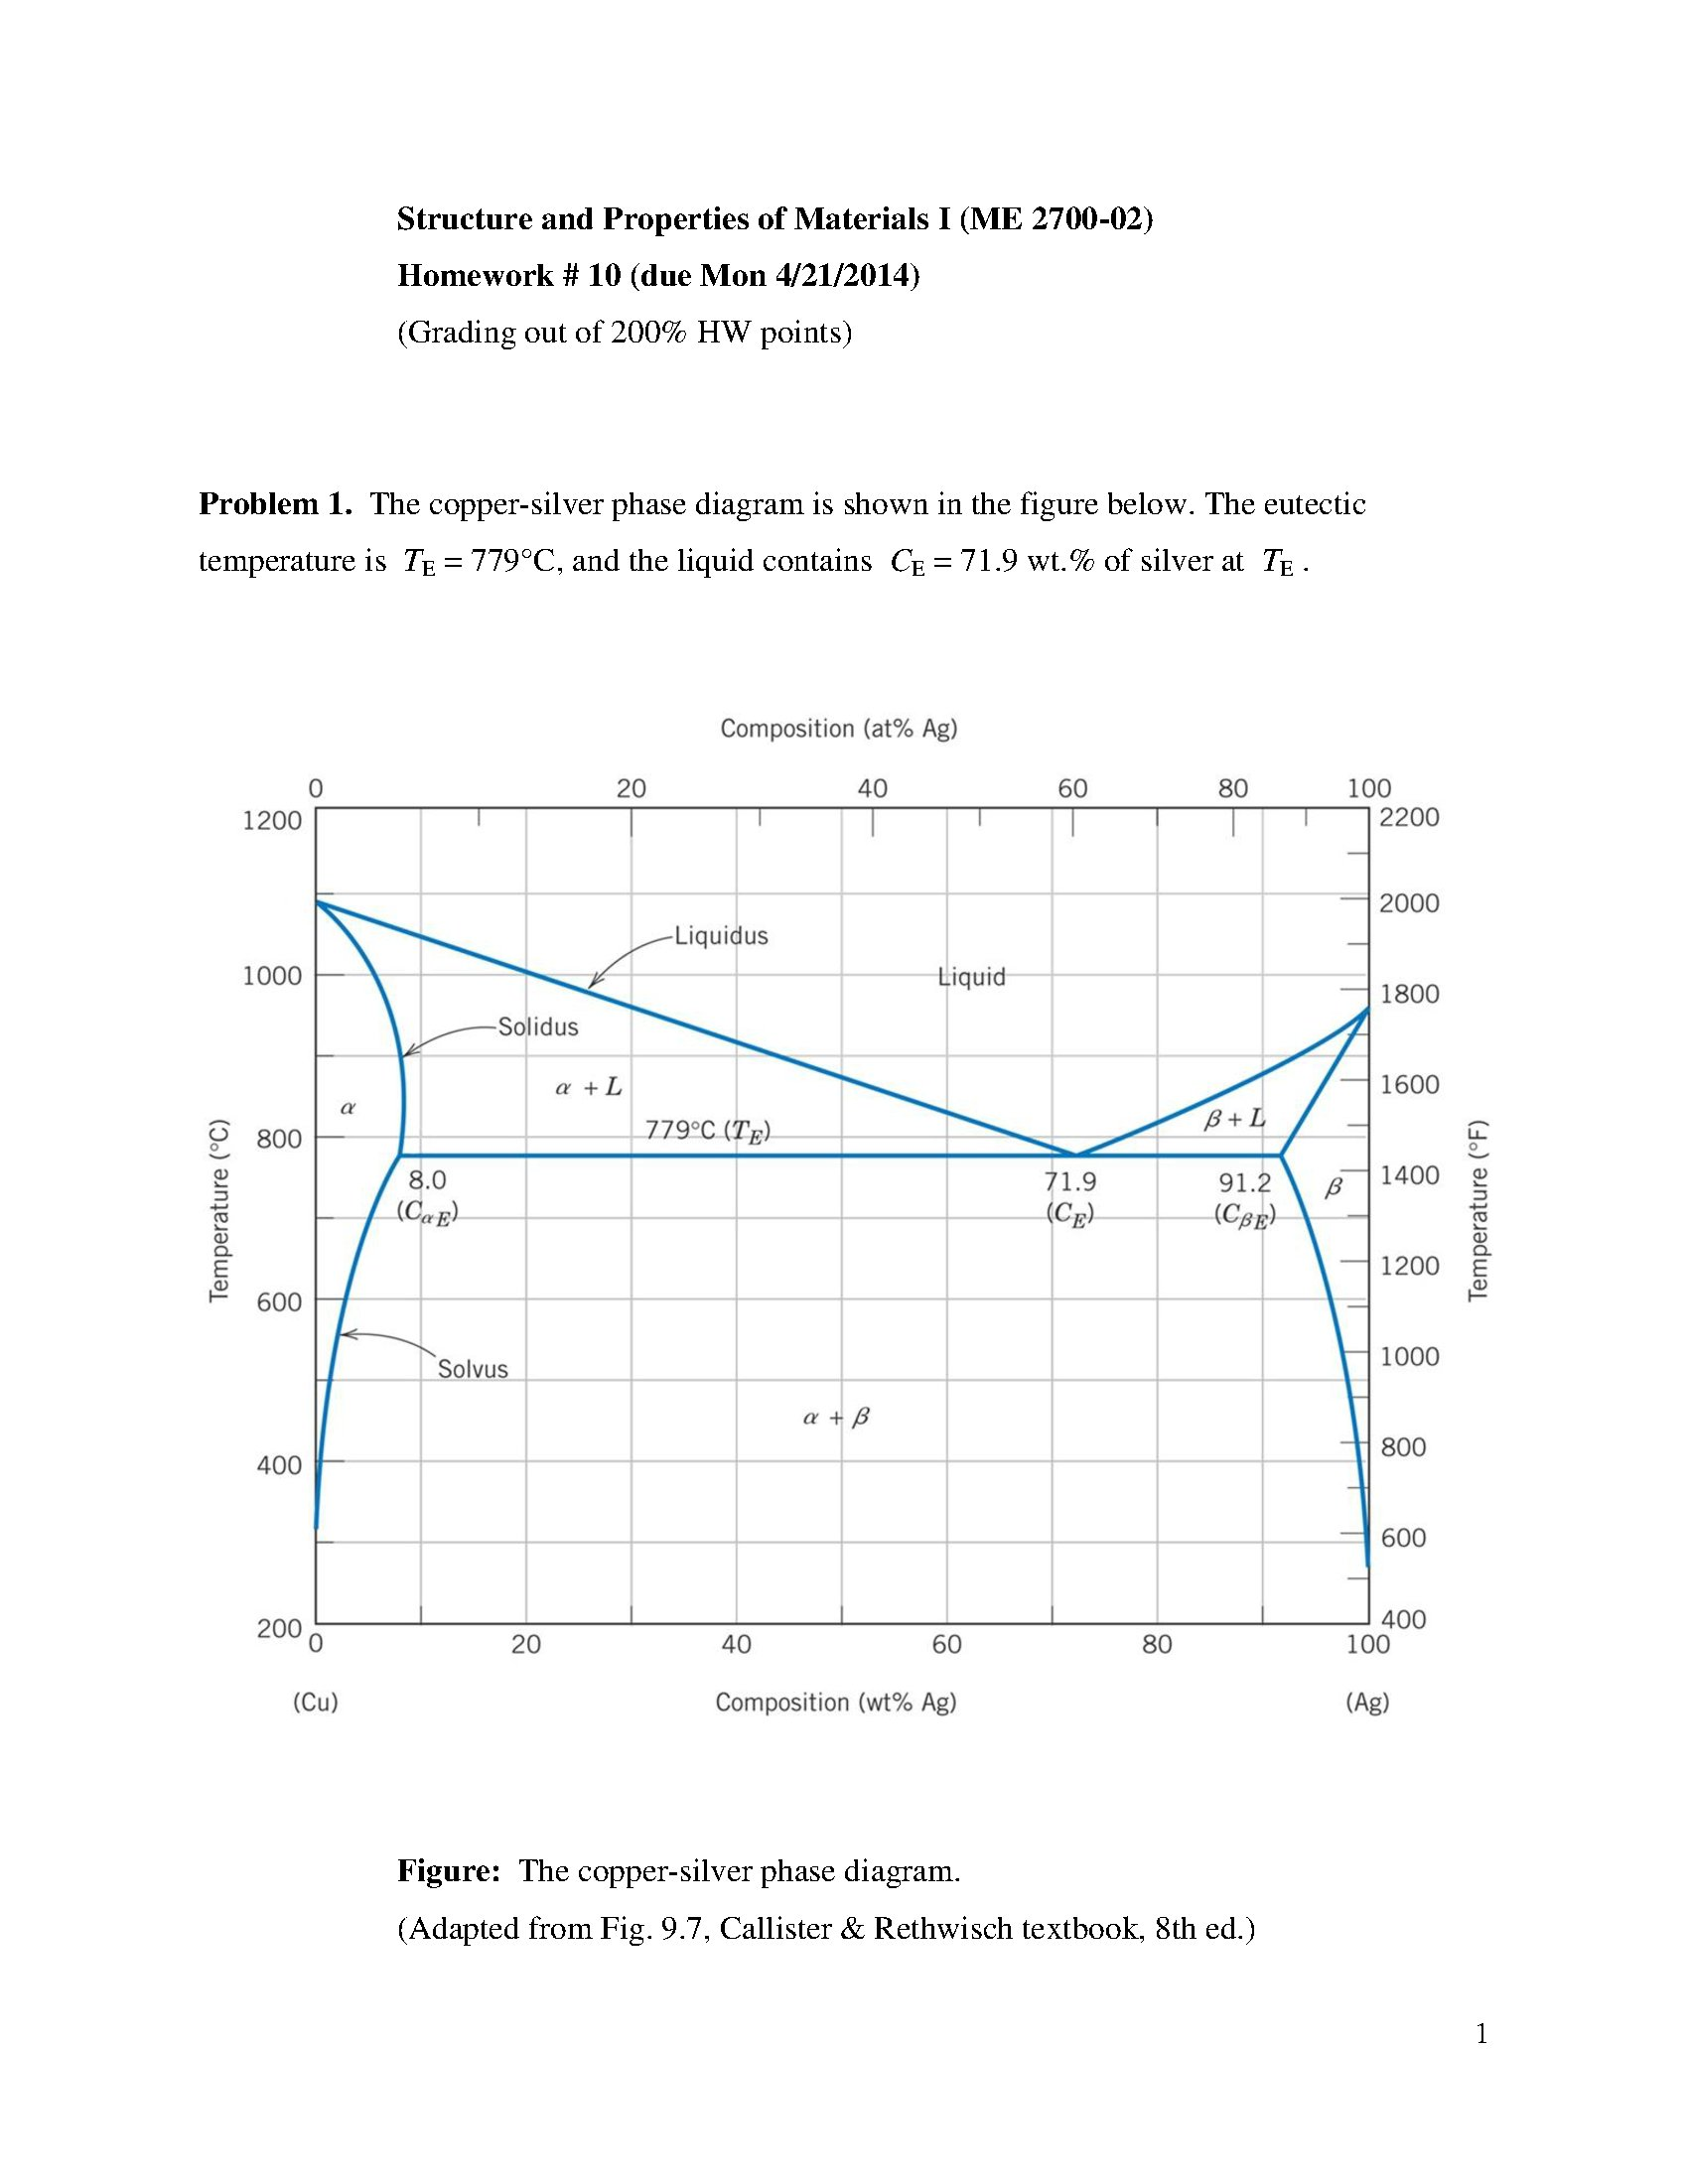 copper silver phase diagram the copper-silver phase diagram is shown in the fi ...